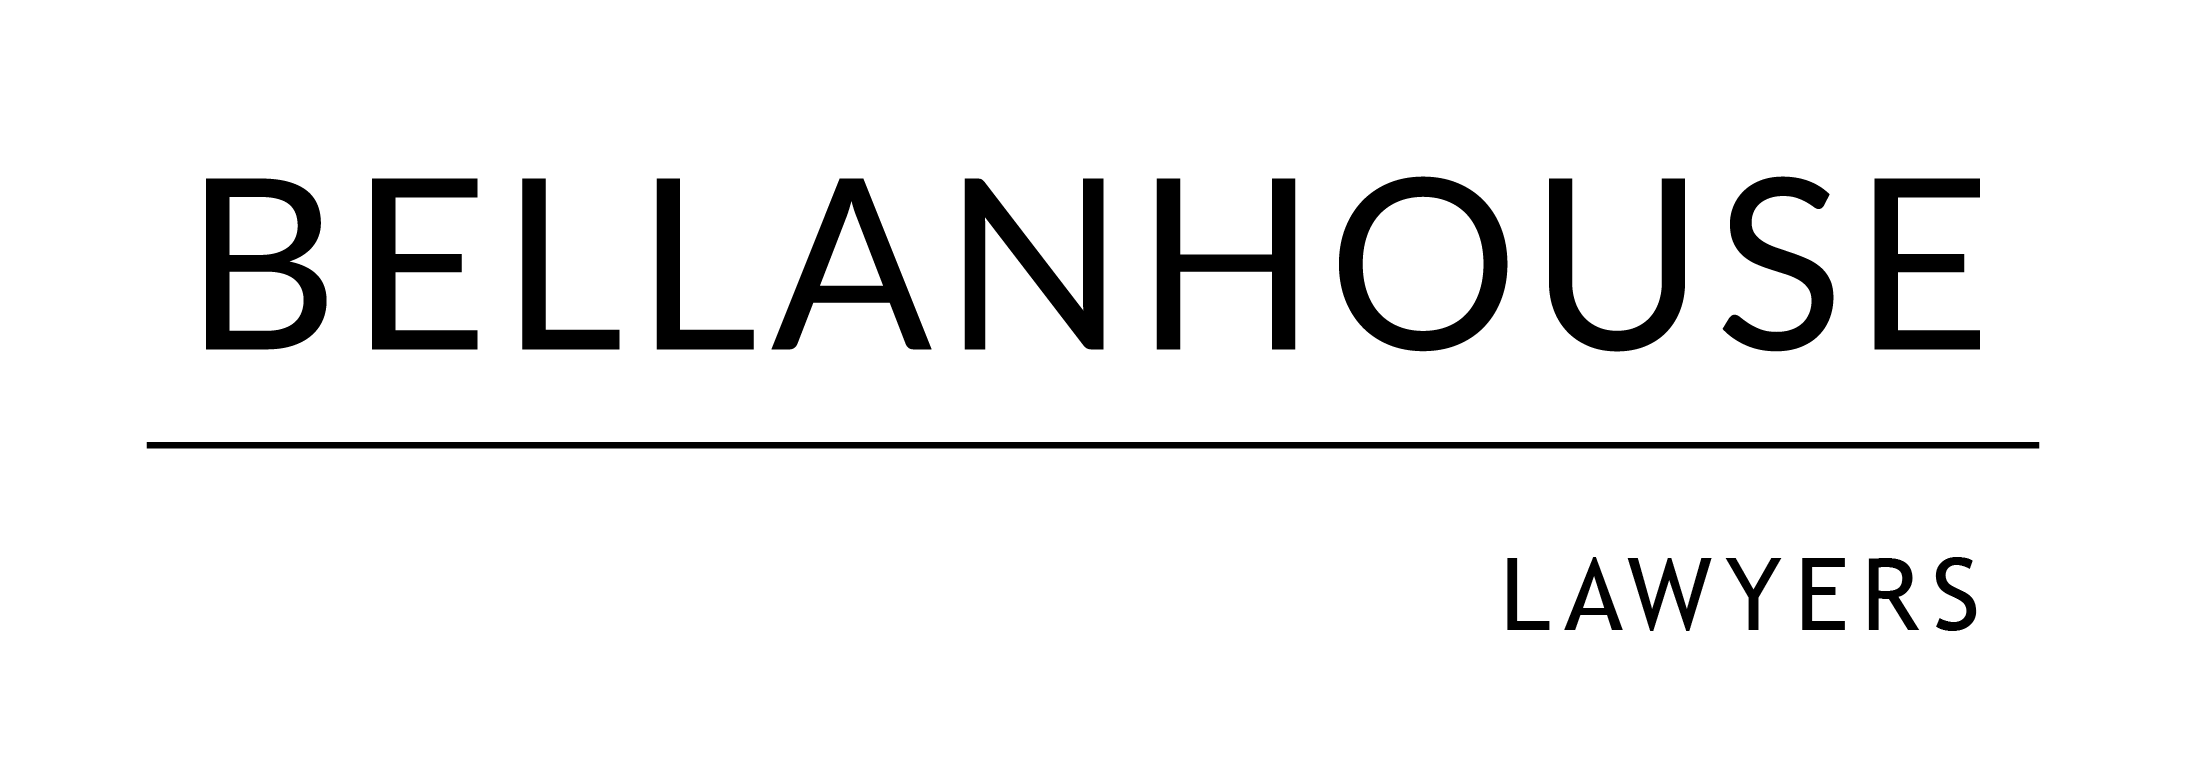 Bellanhouse Lawyers